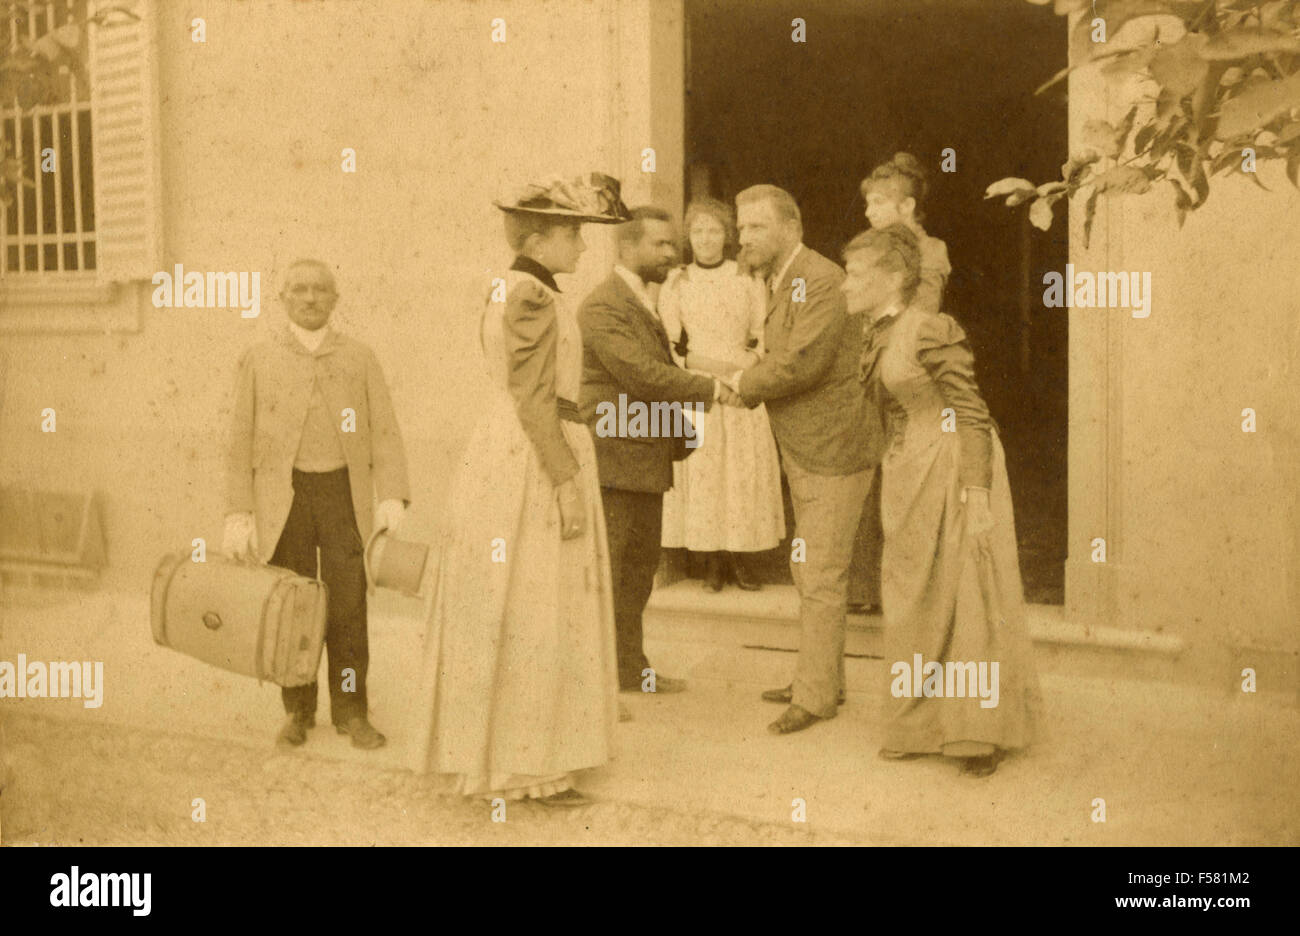 Greeting friends departing - Stock Image